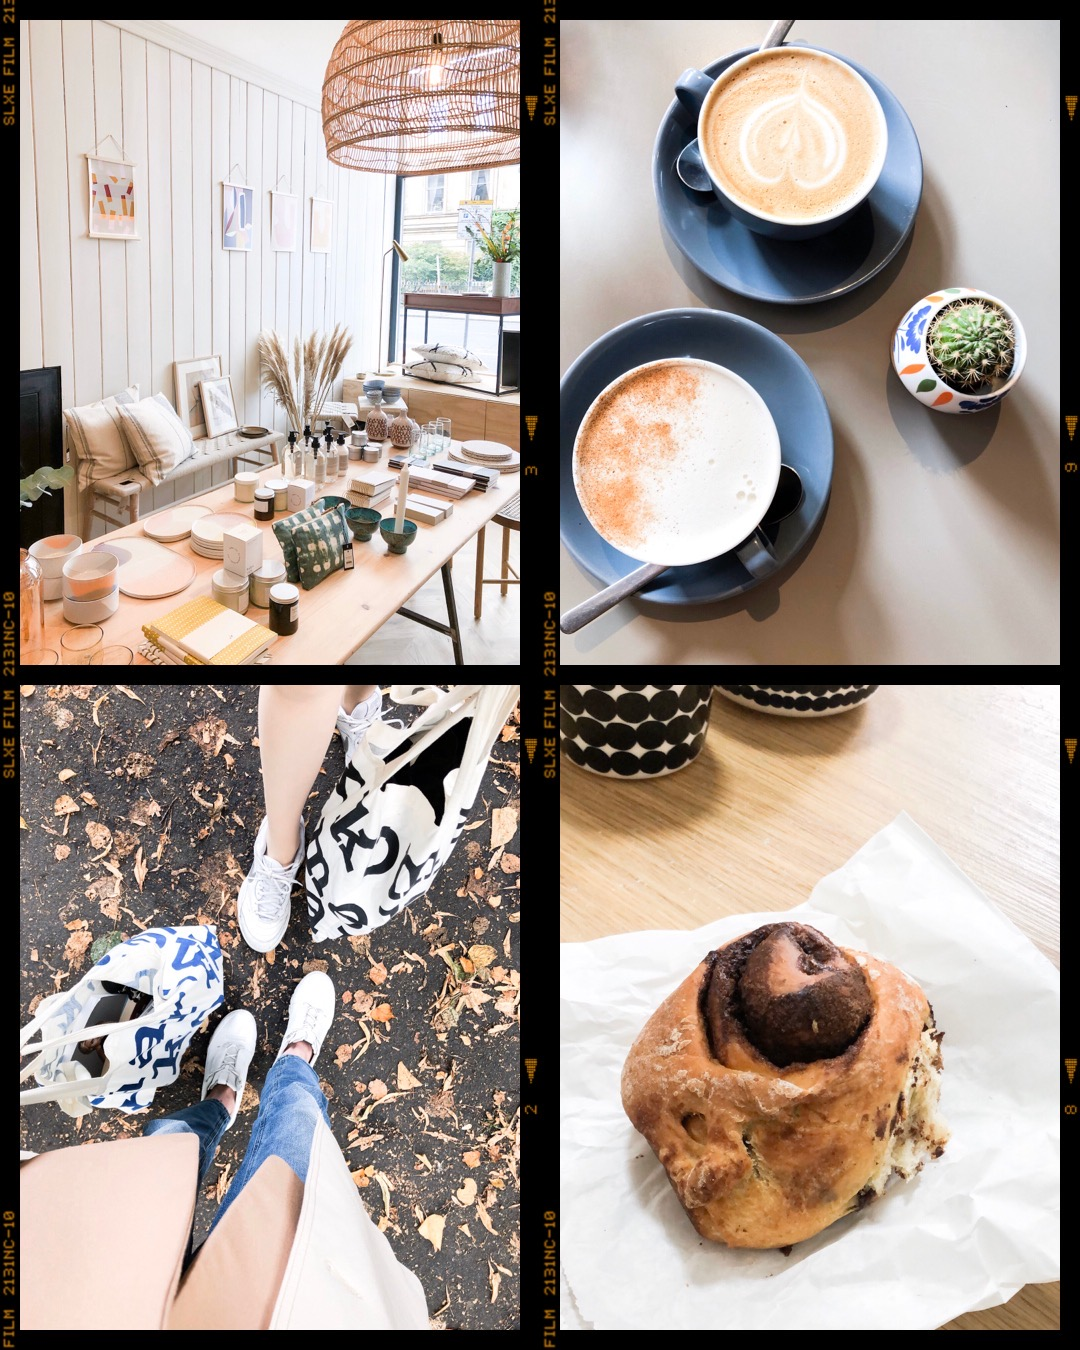 Interior boutique Glasgow, coffee and chai latte, Marimekko, vegan cinnamon bun - Sisustusputiikki Glasgow, kahvi, vegaani korvapuusti